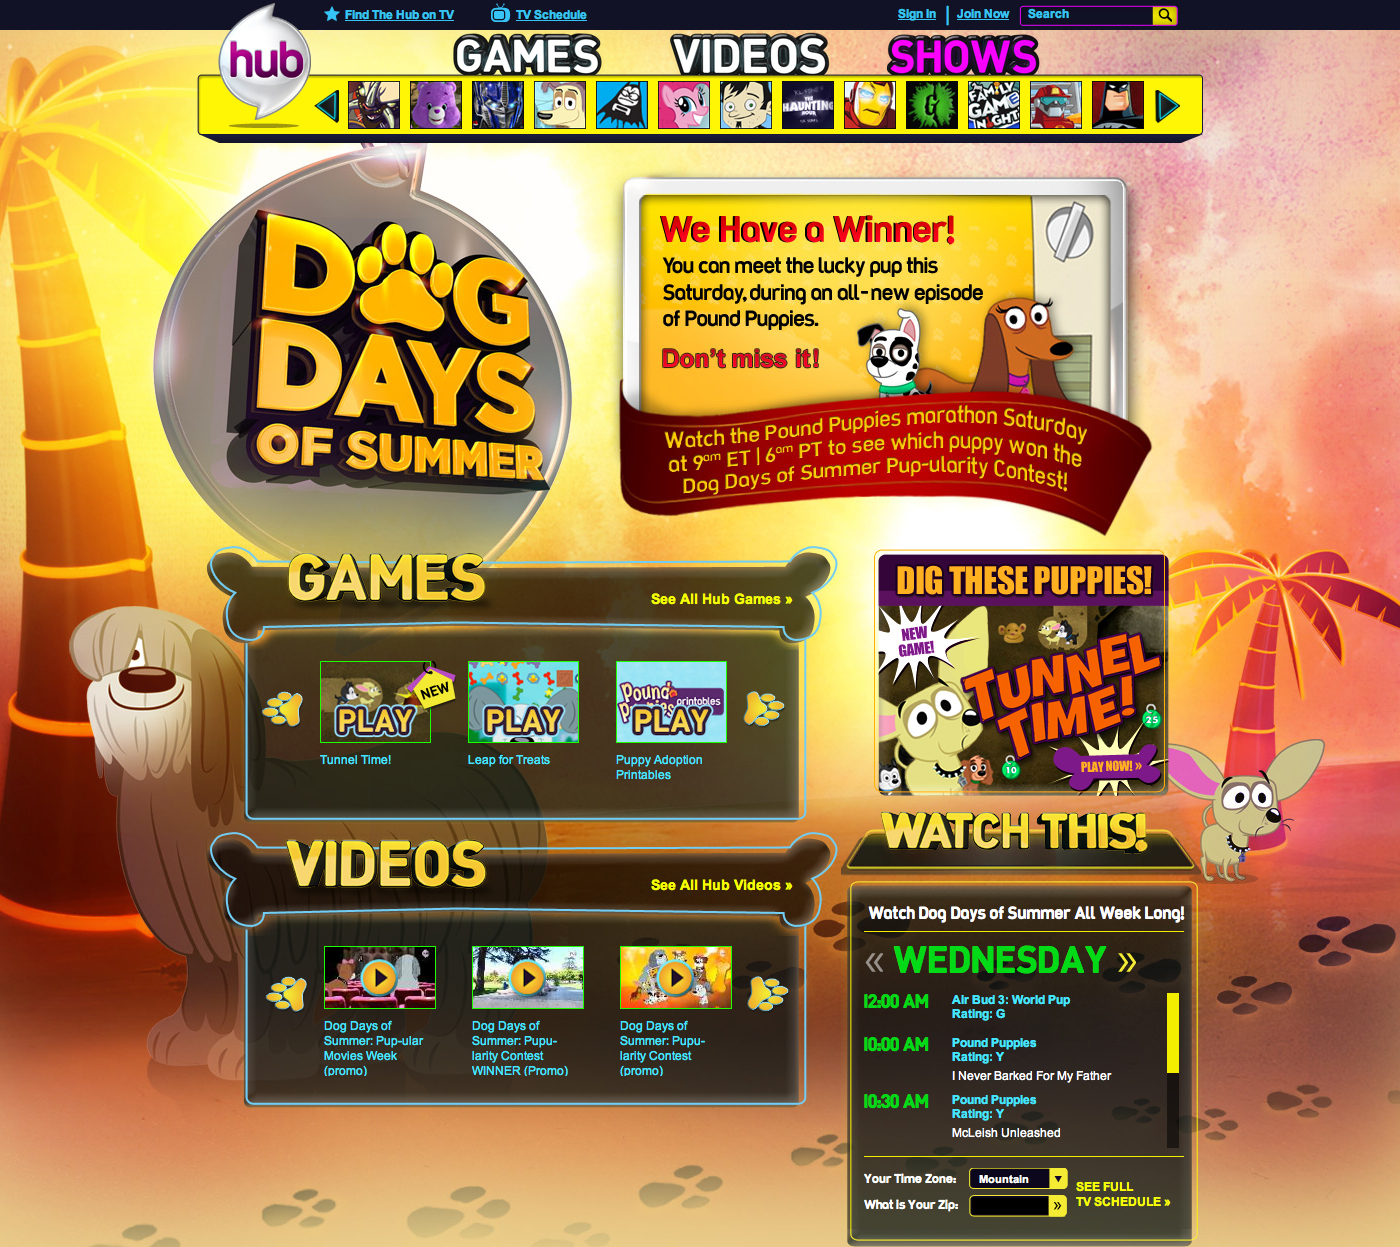 hubworld-dog-days-showpage.jpg